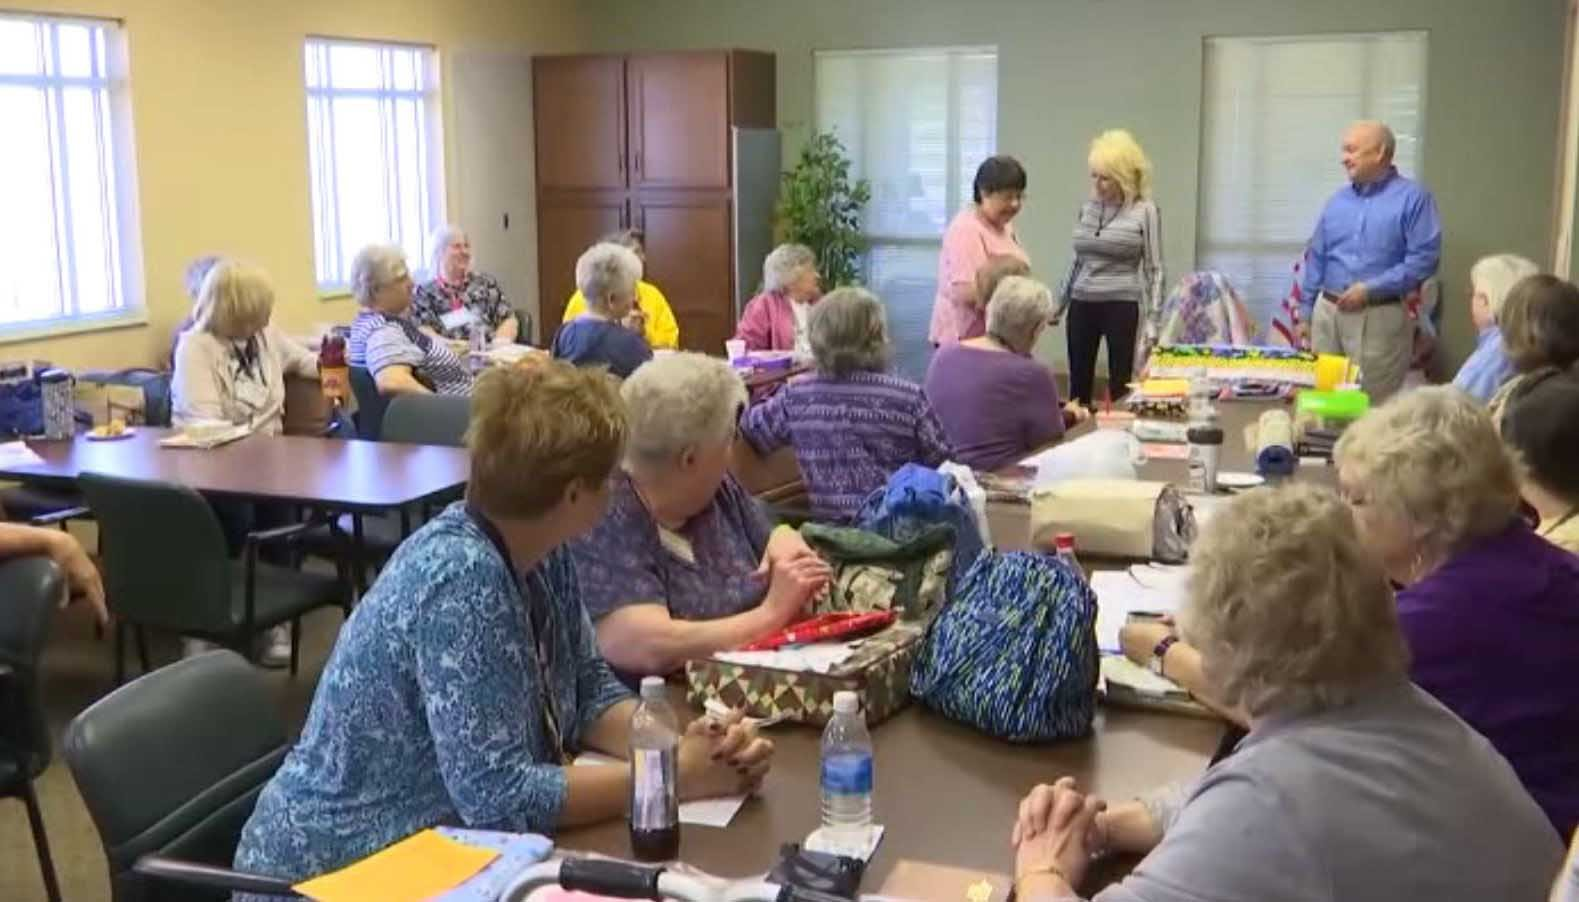 Country music legend Dolly Parton made a surprise visit to a senior center in her hometown of Sevierville on Monday. (Source: WATE/CNN)